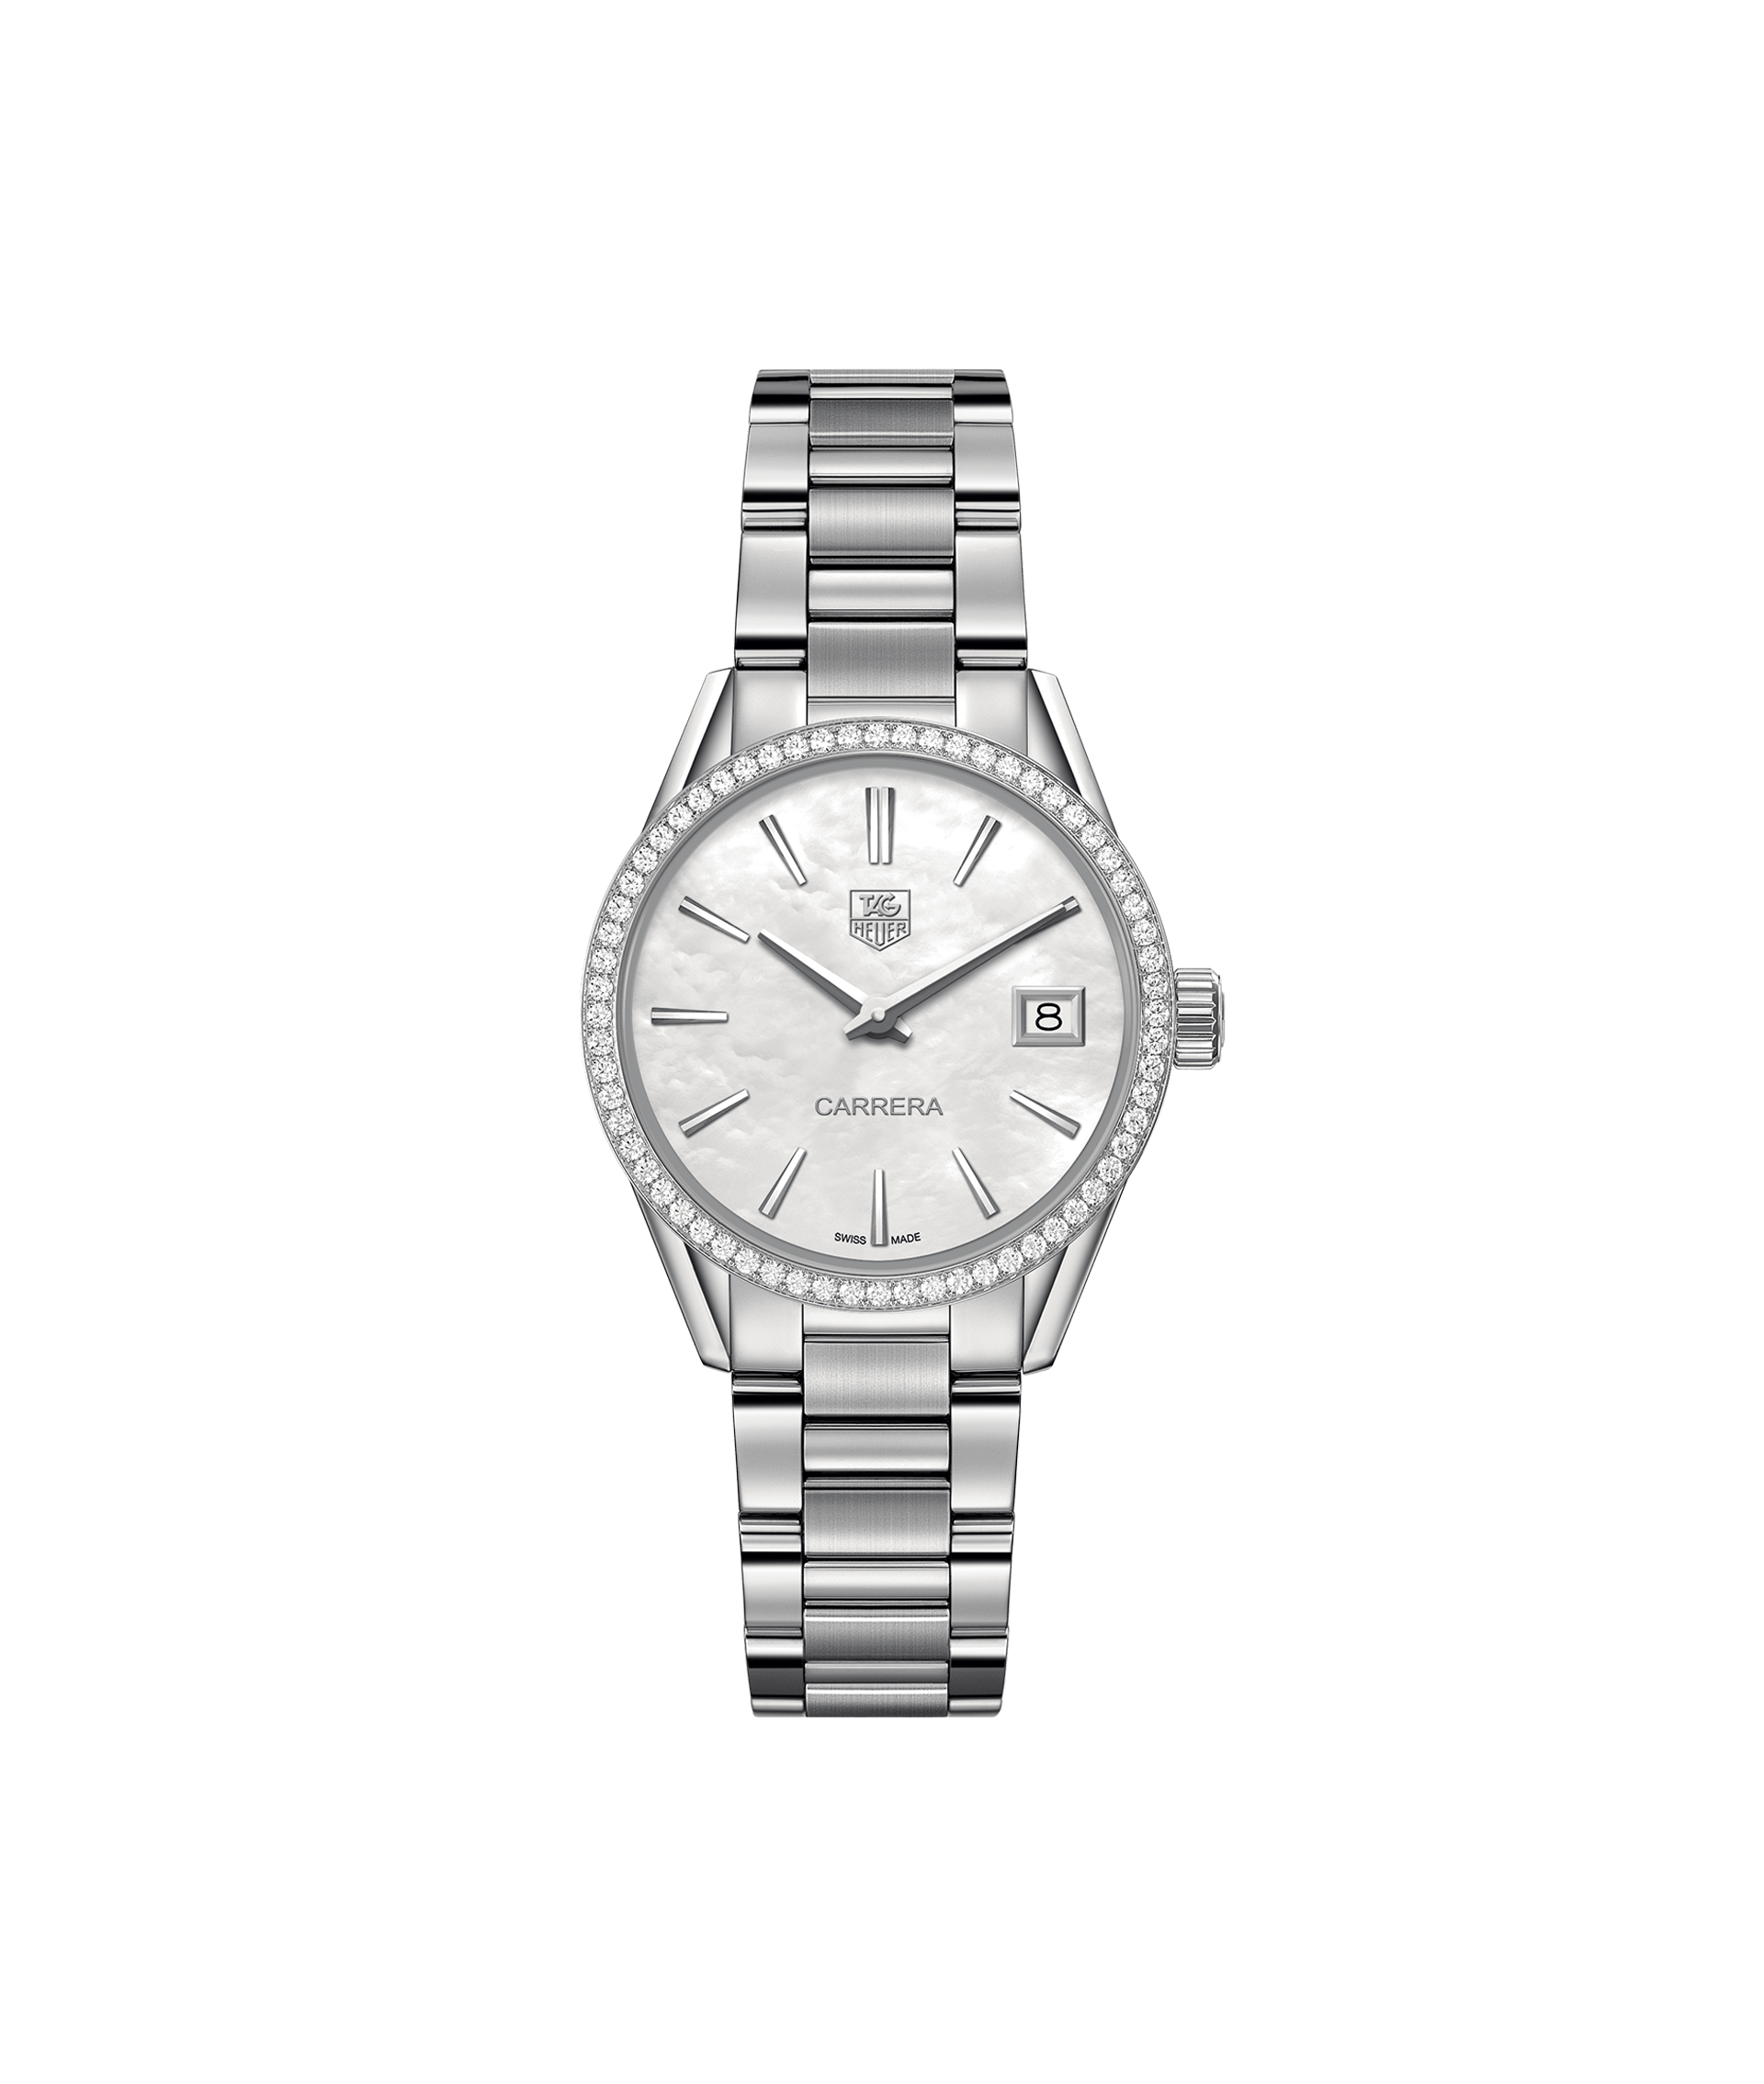 TAG HEUER CARRERA 100m - 32mm - DIAMONDS QUARTZ - WAR1315.BA0778